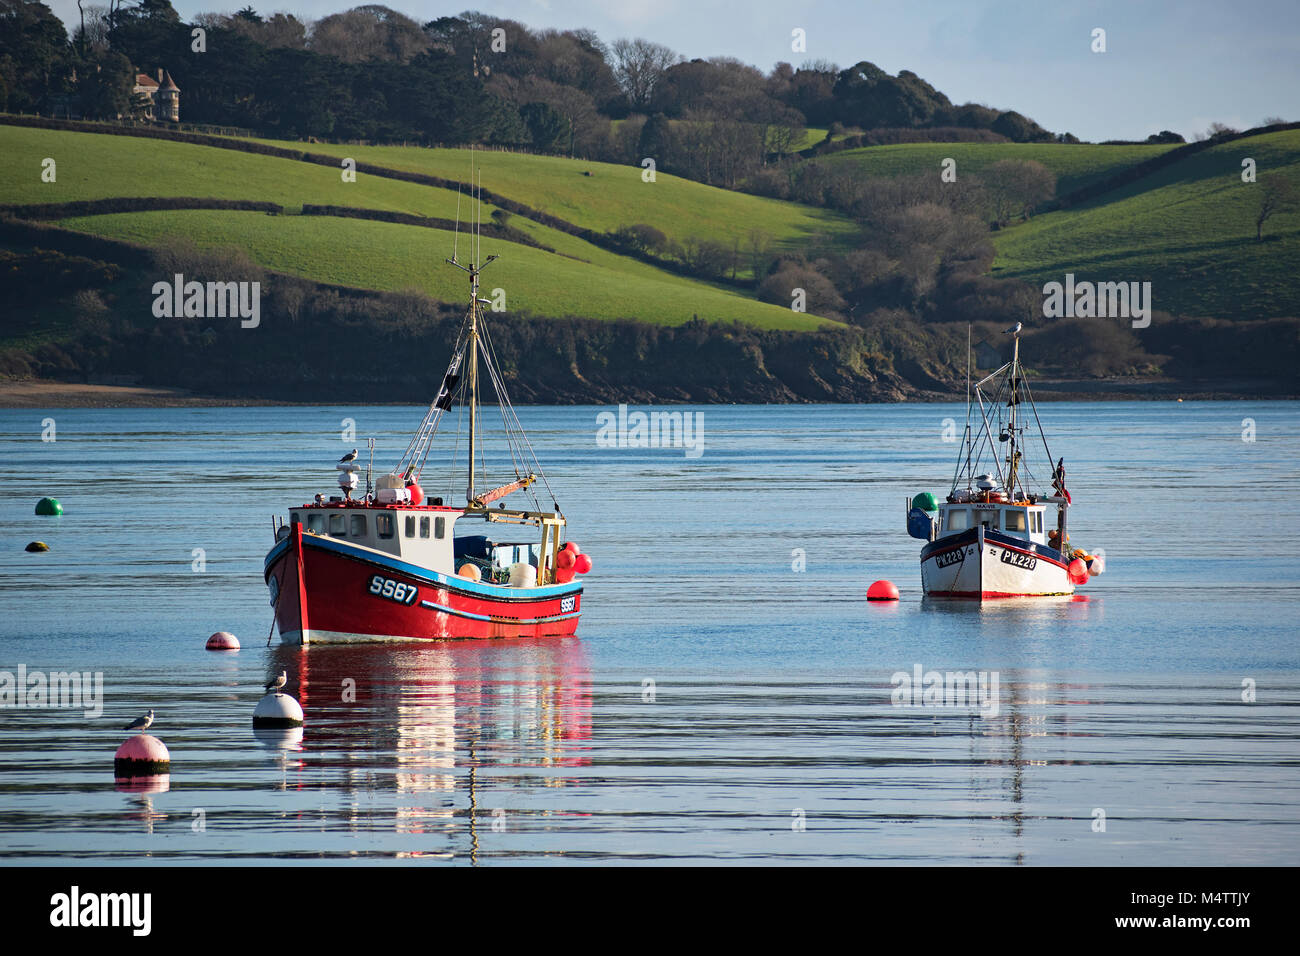 cornish fishing boats on the helford river in cornwall, england, britain, uk. - Stock Image